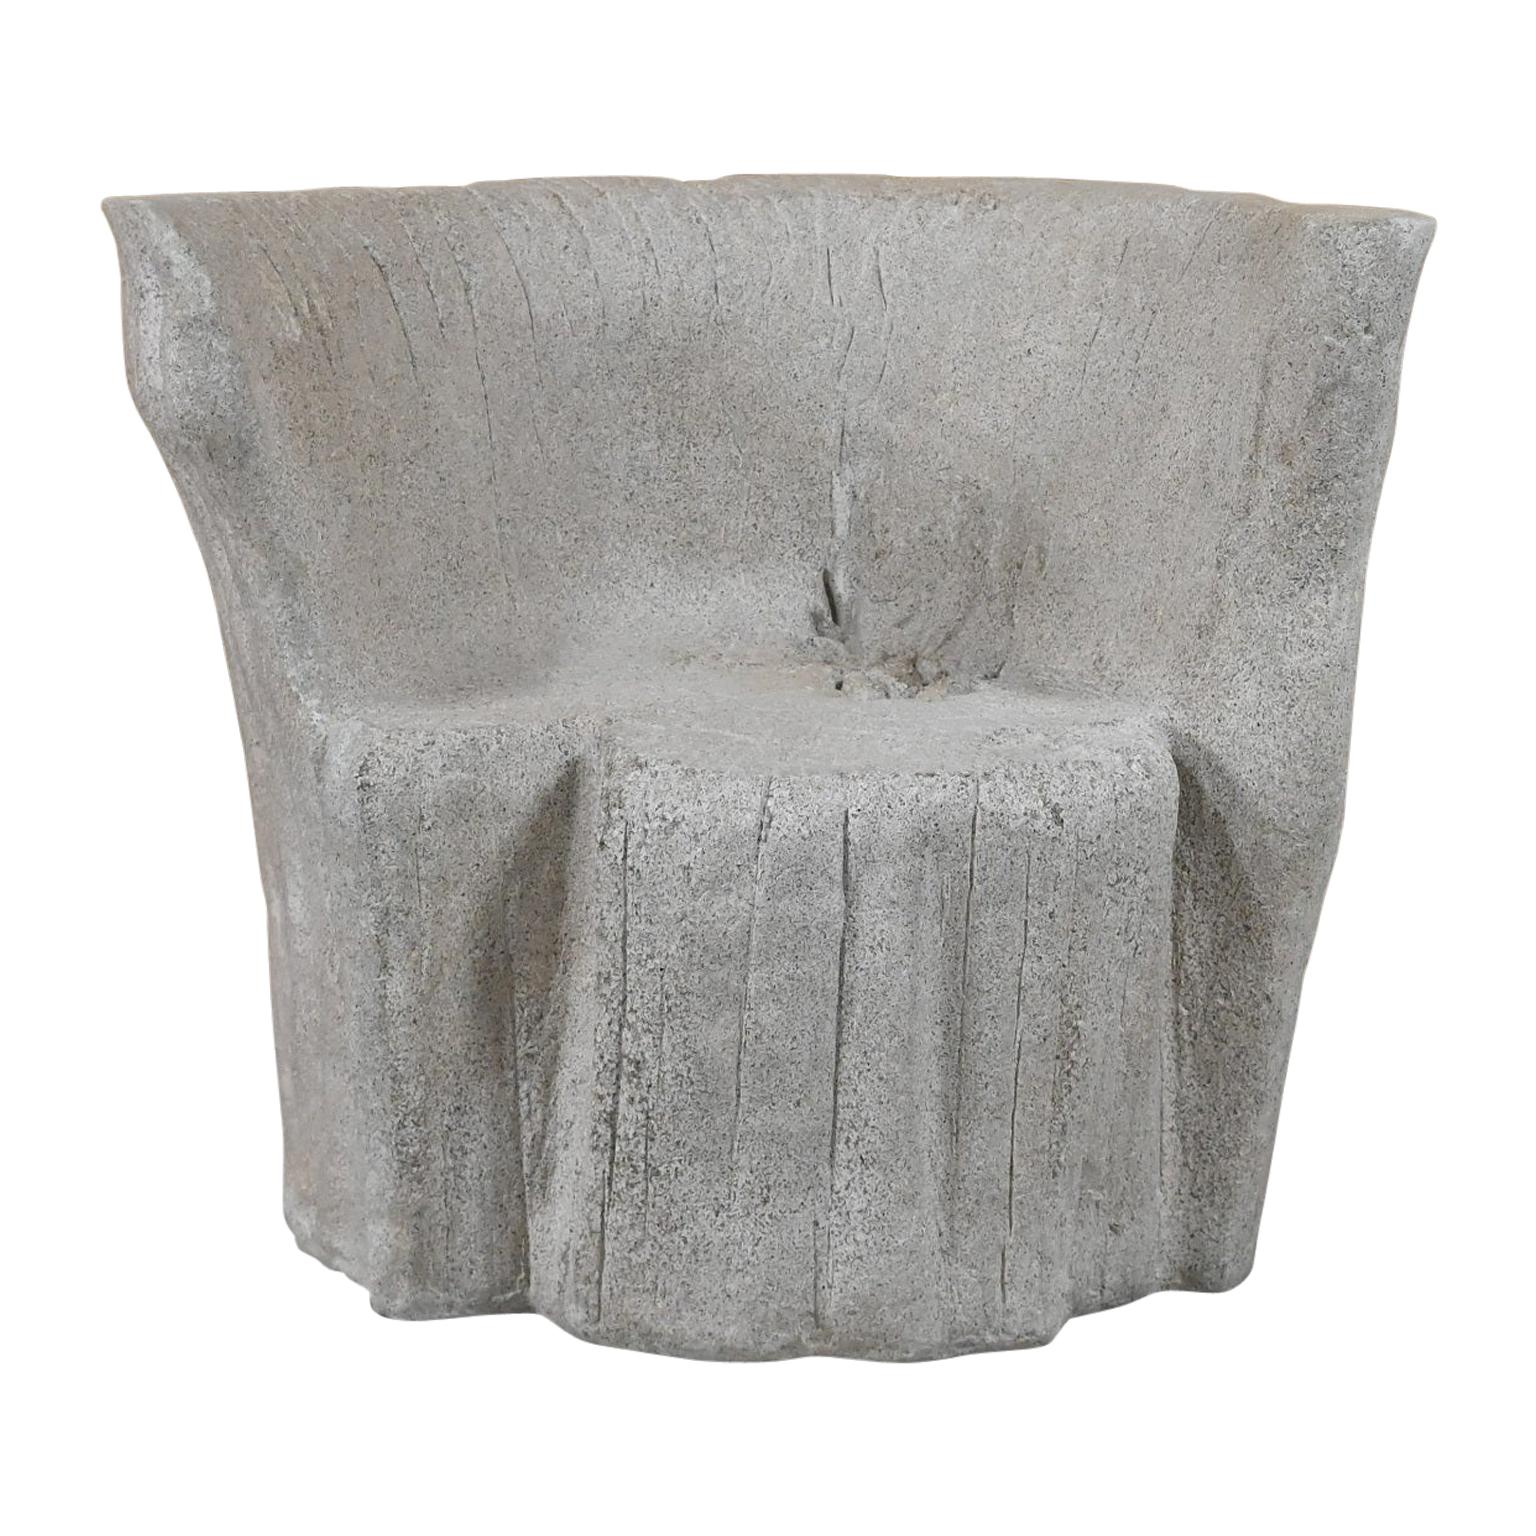 Cast Resin 'Acacia' Chair, Aged Concrete Finish by Zachary A. Design